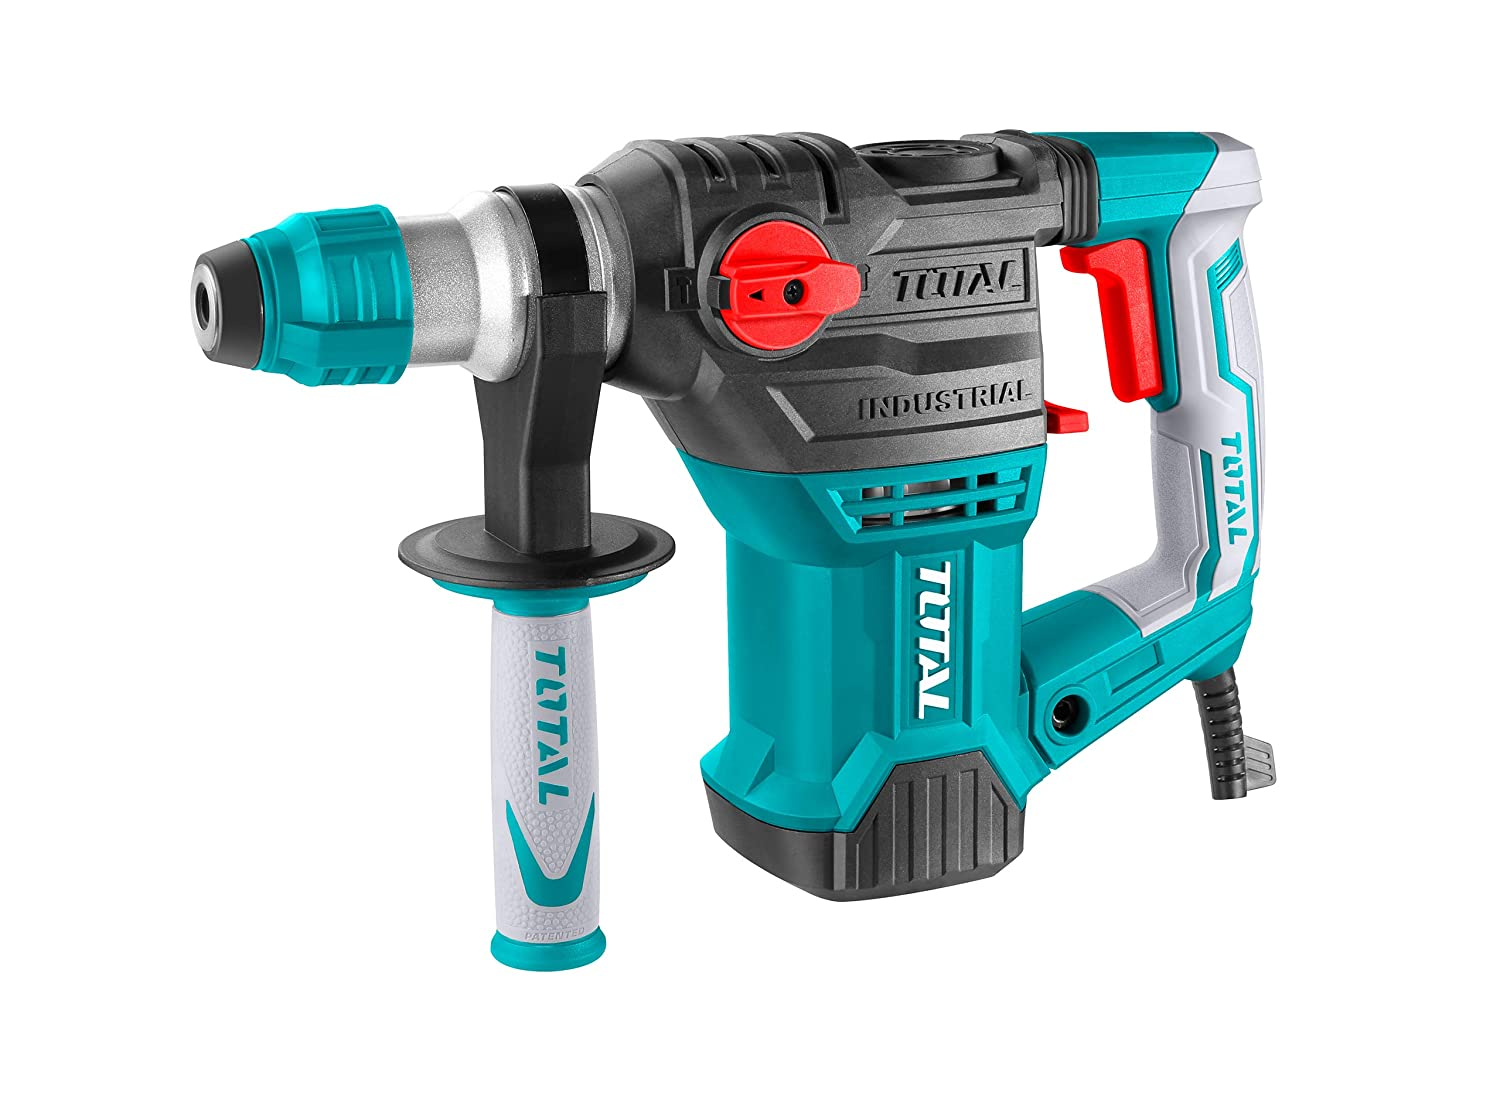 MR LIGHT TOTAL Rotary Hammer with 3 Drills and 2 Chisels